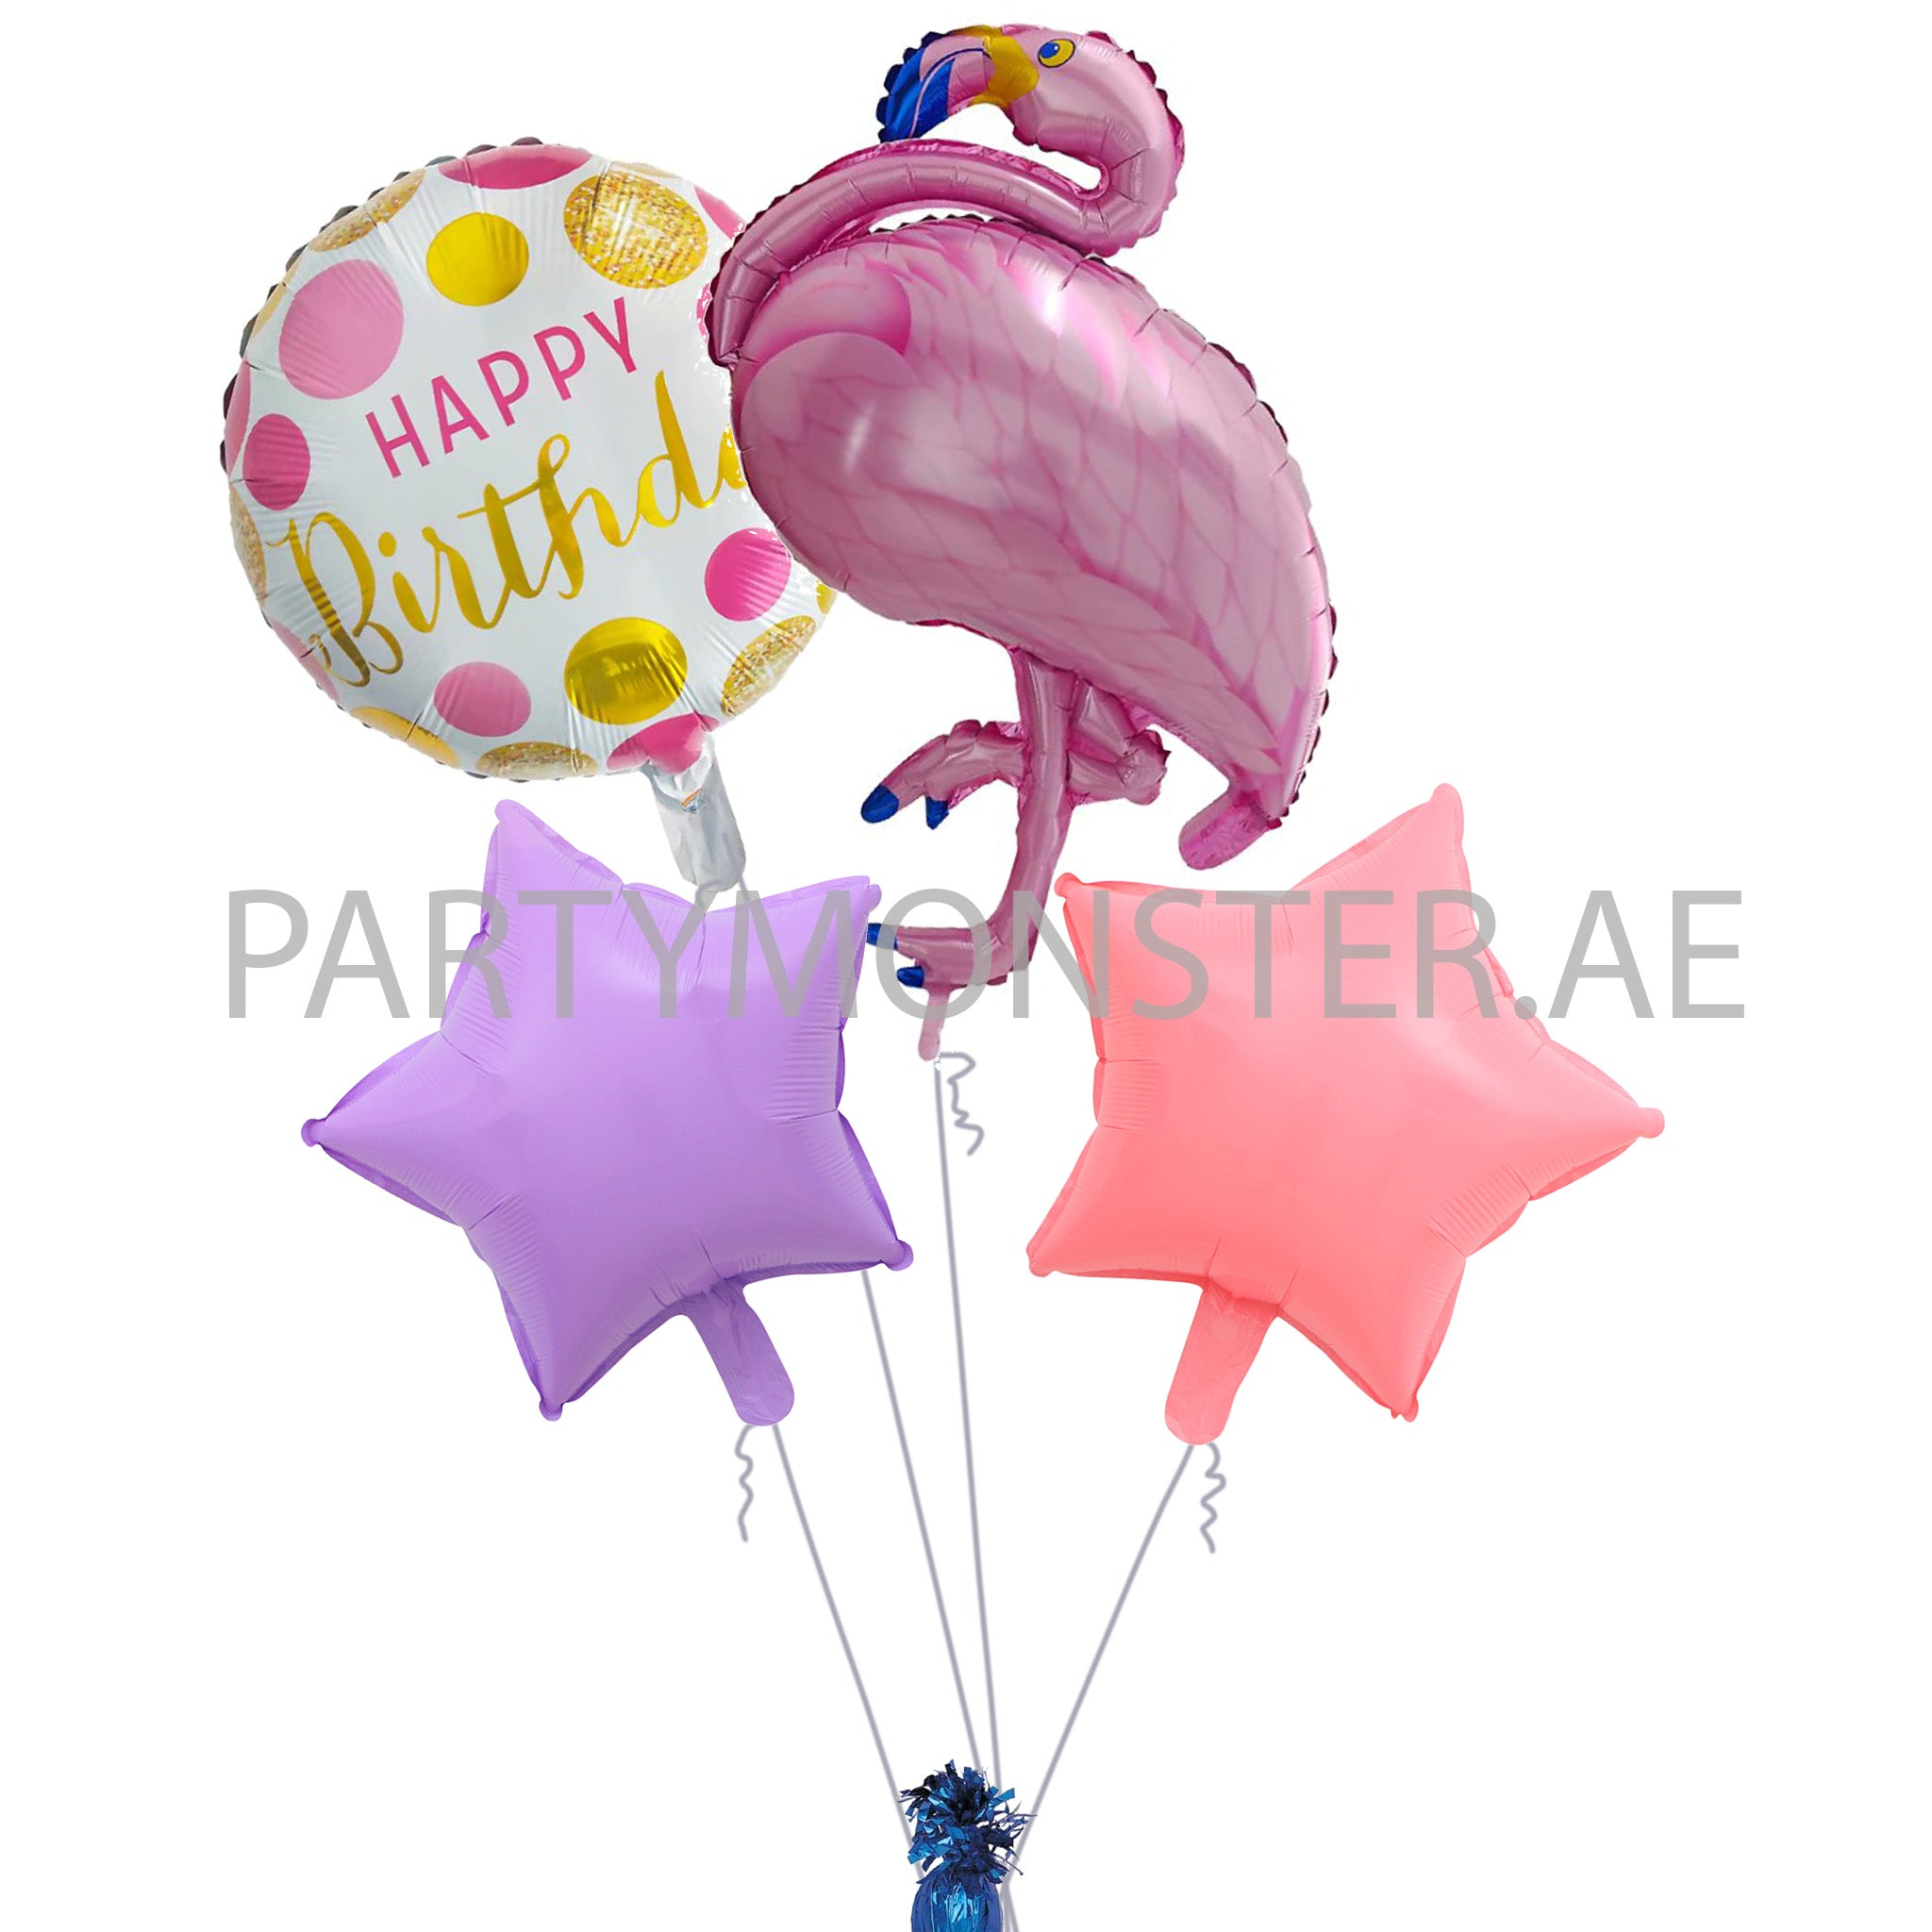 Flamingo birthday foil balloons bouquet - PartyMonster.ae